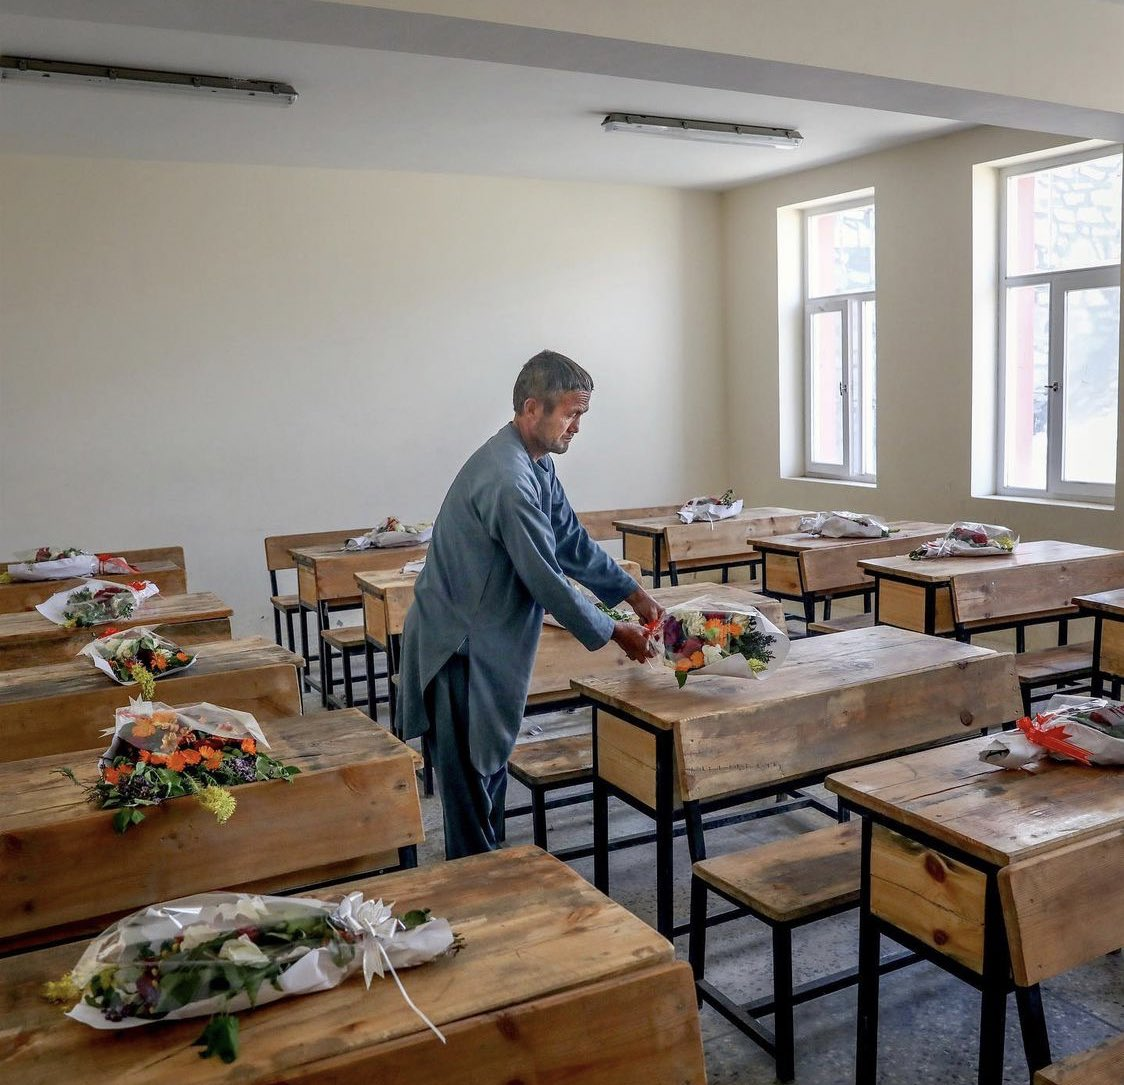 Mourning a loss: A classroom in the Afghan girls' school where 85 were killed by a car-bomb